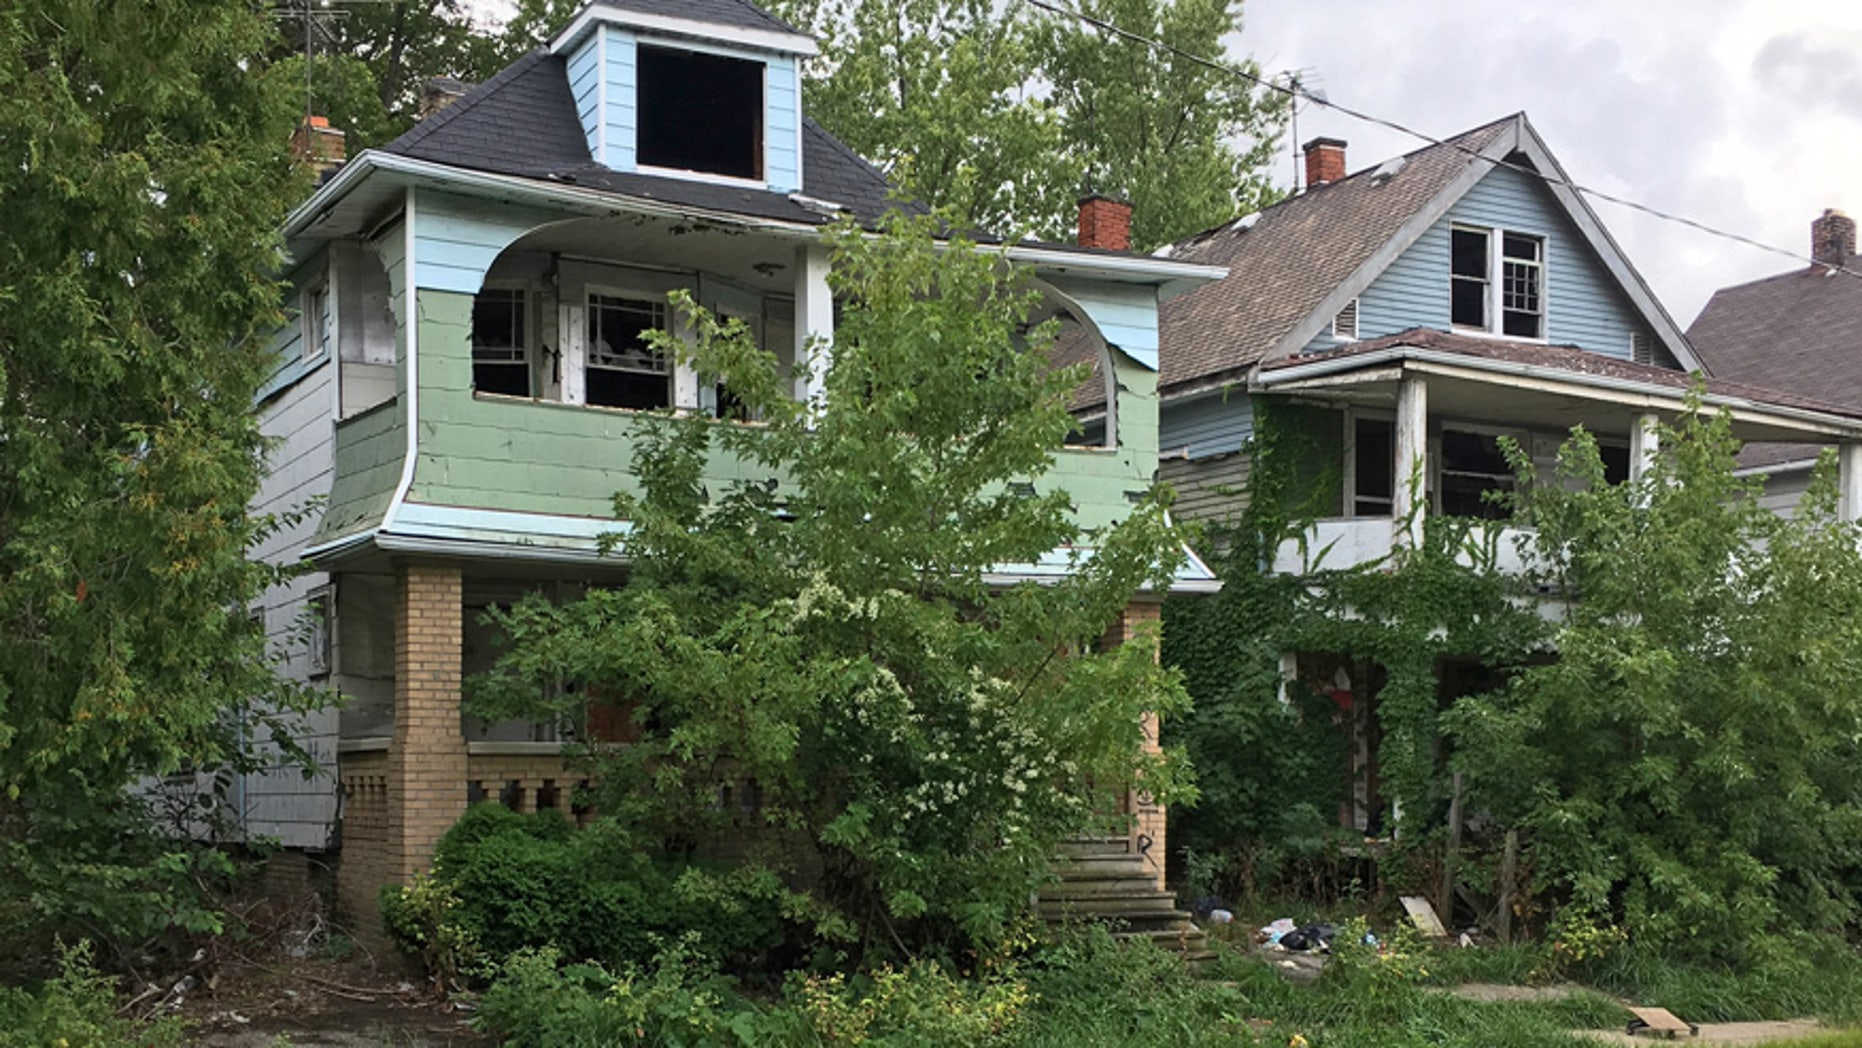 This Aug. 31, 2016, photo shows houses with missing windows and overgrown lawns along a street marred by cracks and potholes in East Cleveland, Ohio. Cleveland and East Cleveland, two of the country's poorest cities, are debating whether to merge, with both cities saying the state of Ohio needs to provide millions to begin fixing East Cleveland's infrastructure and finances.